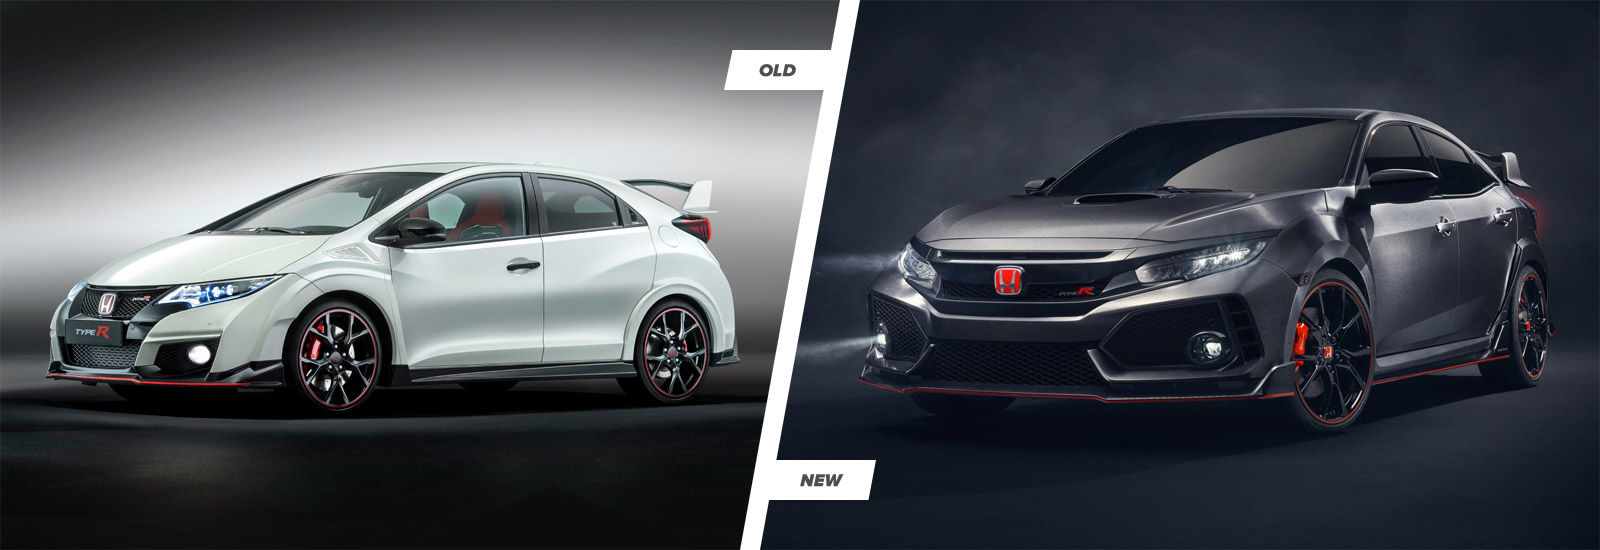 honda civic type r new vs old compared carwow